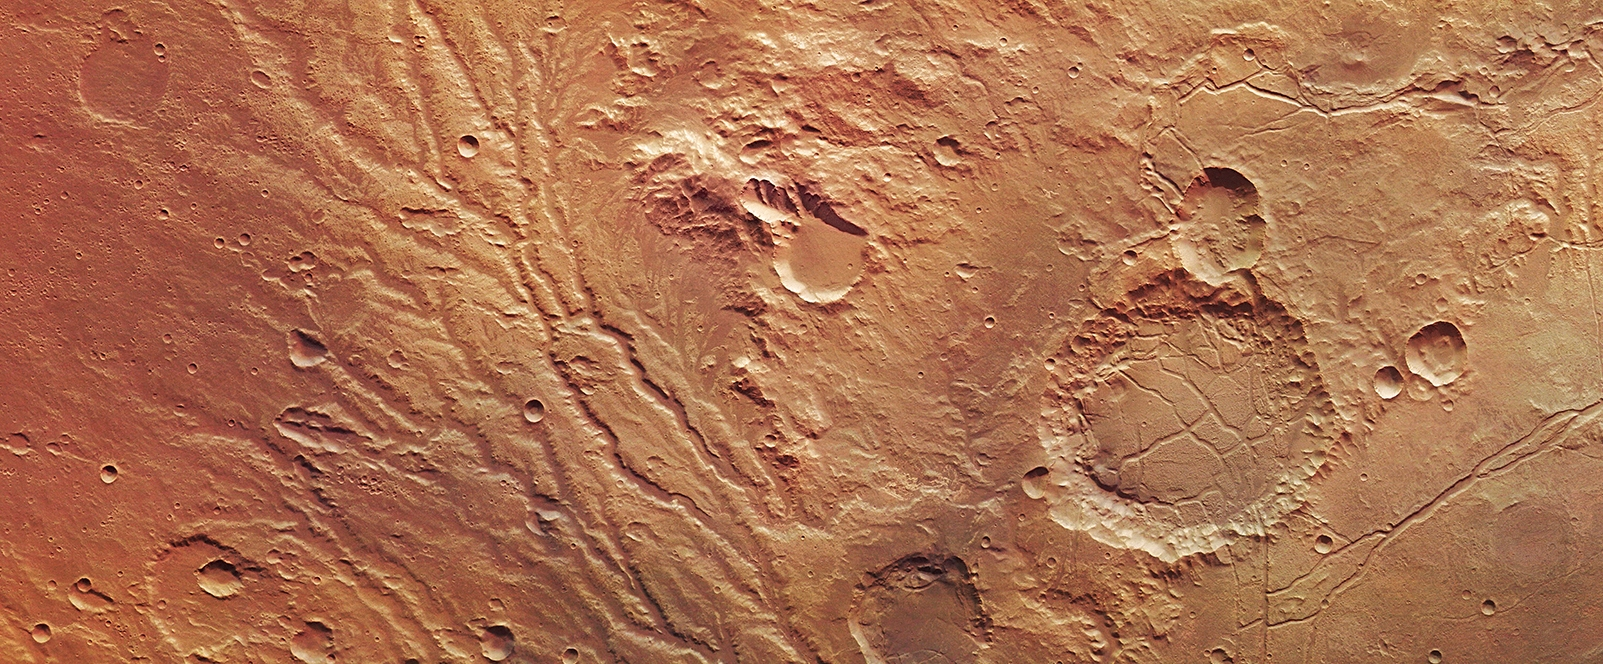 The Arda Valles region of Mars